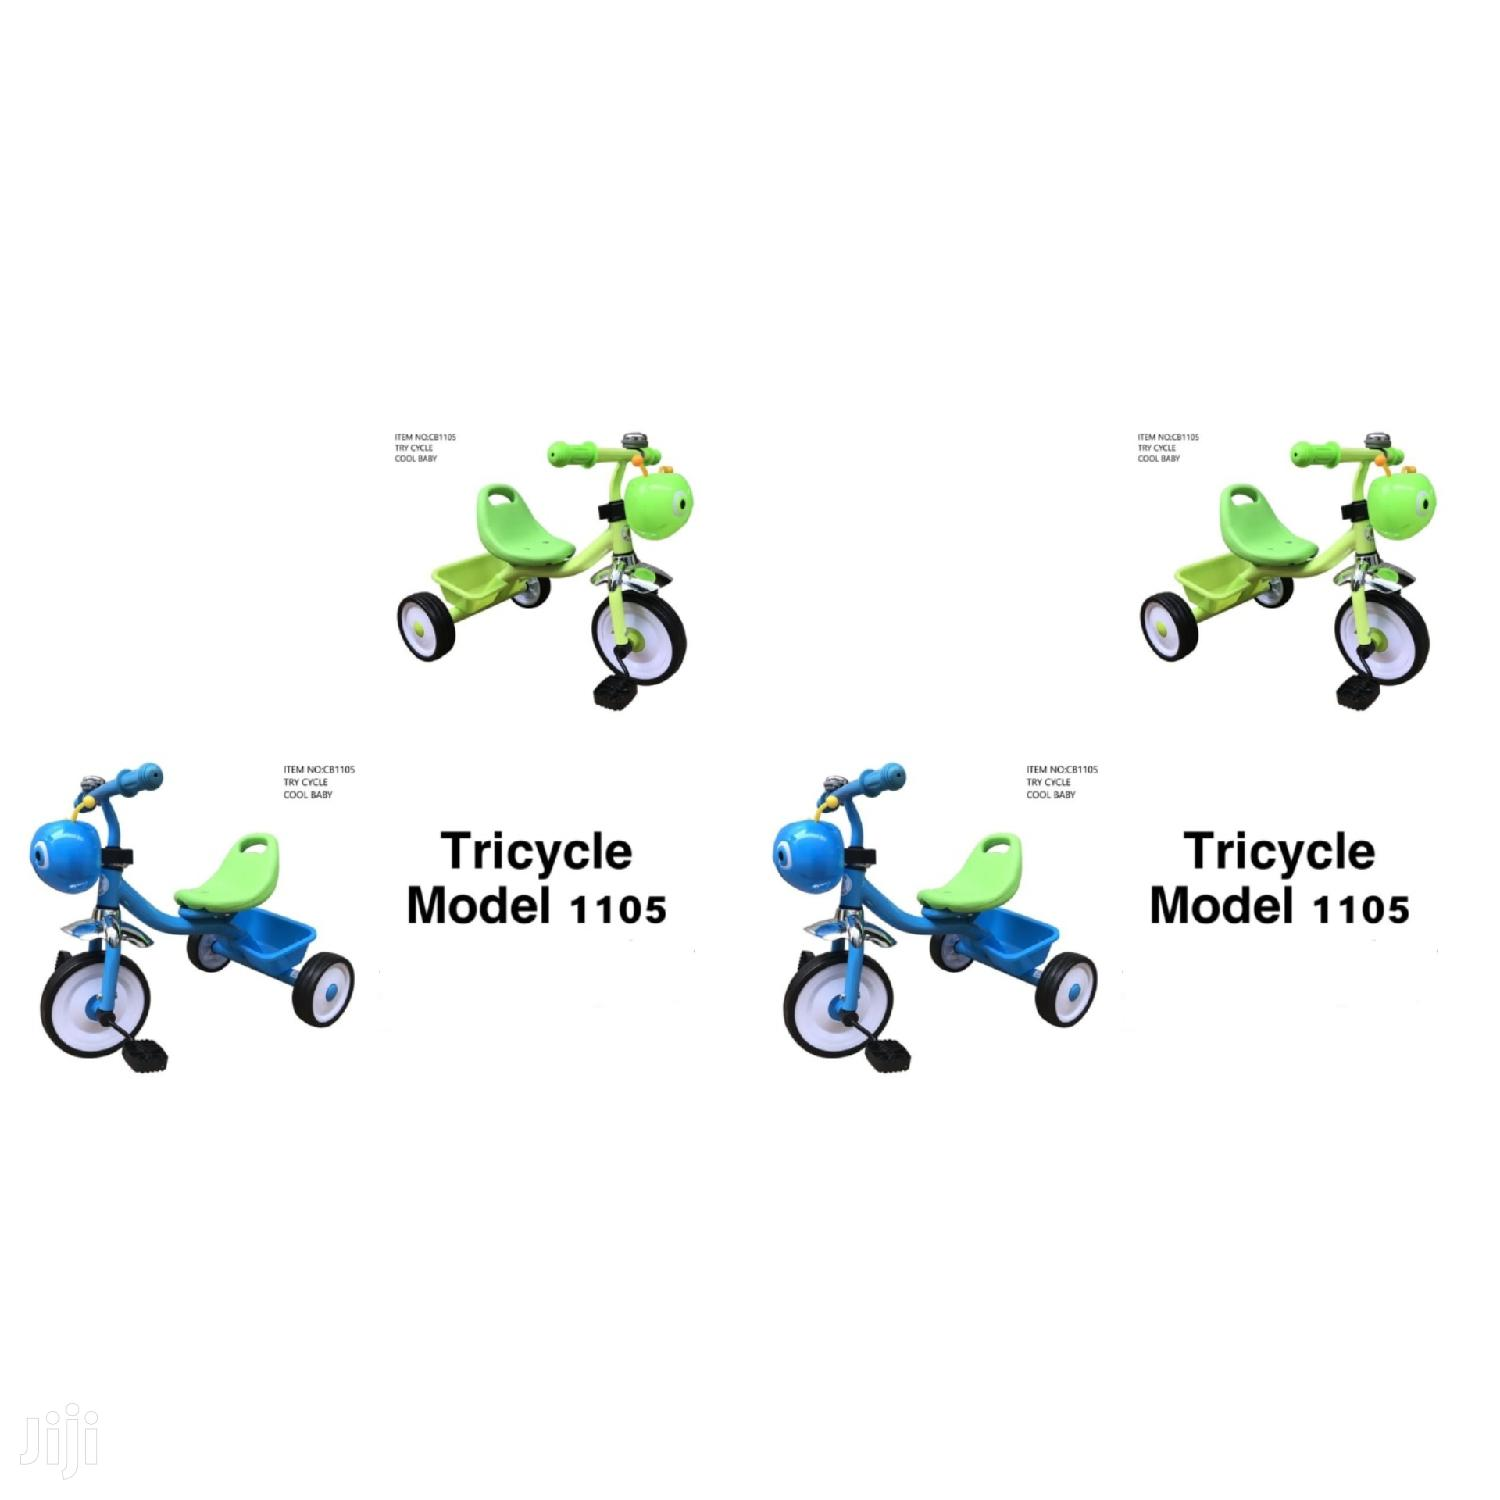 Tricycle Model 1105